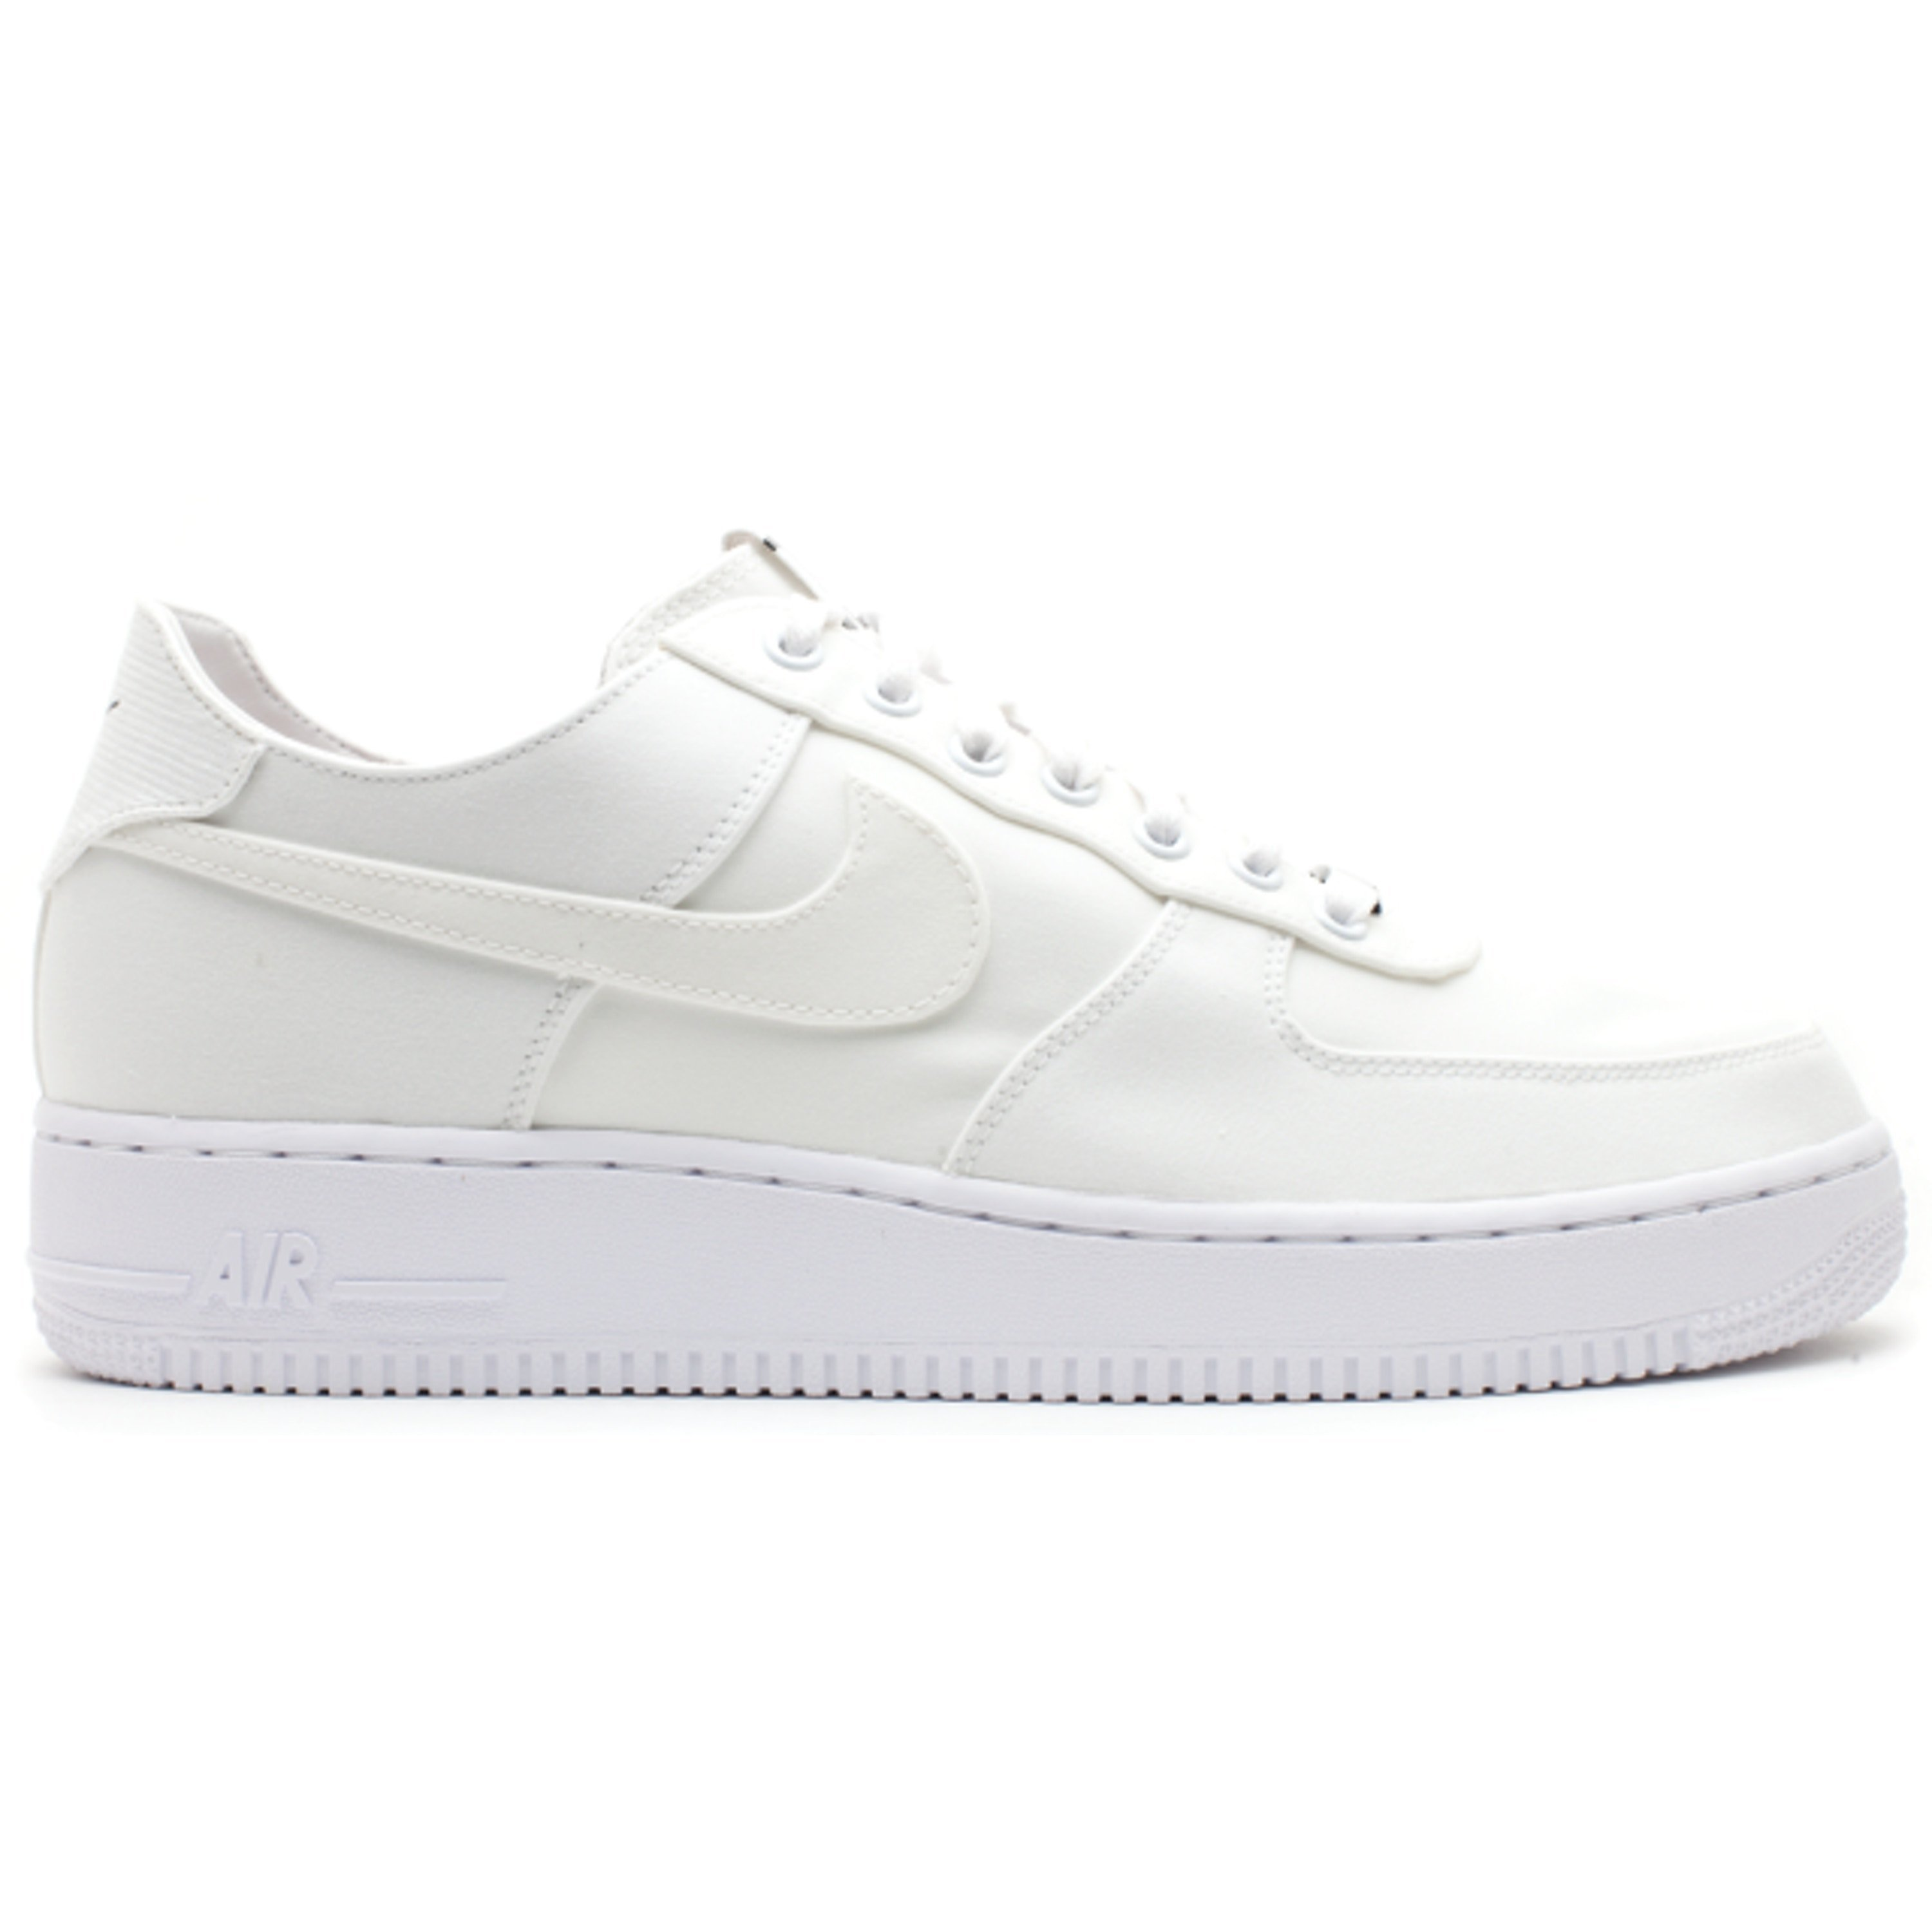 Nike Air Force 1 Low Dover Street Market (543512-110)